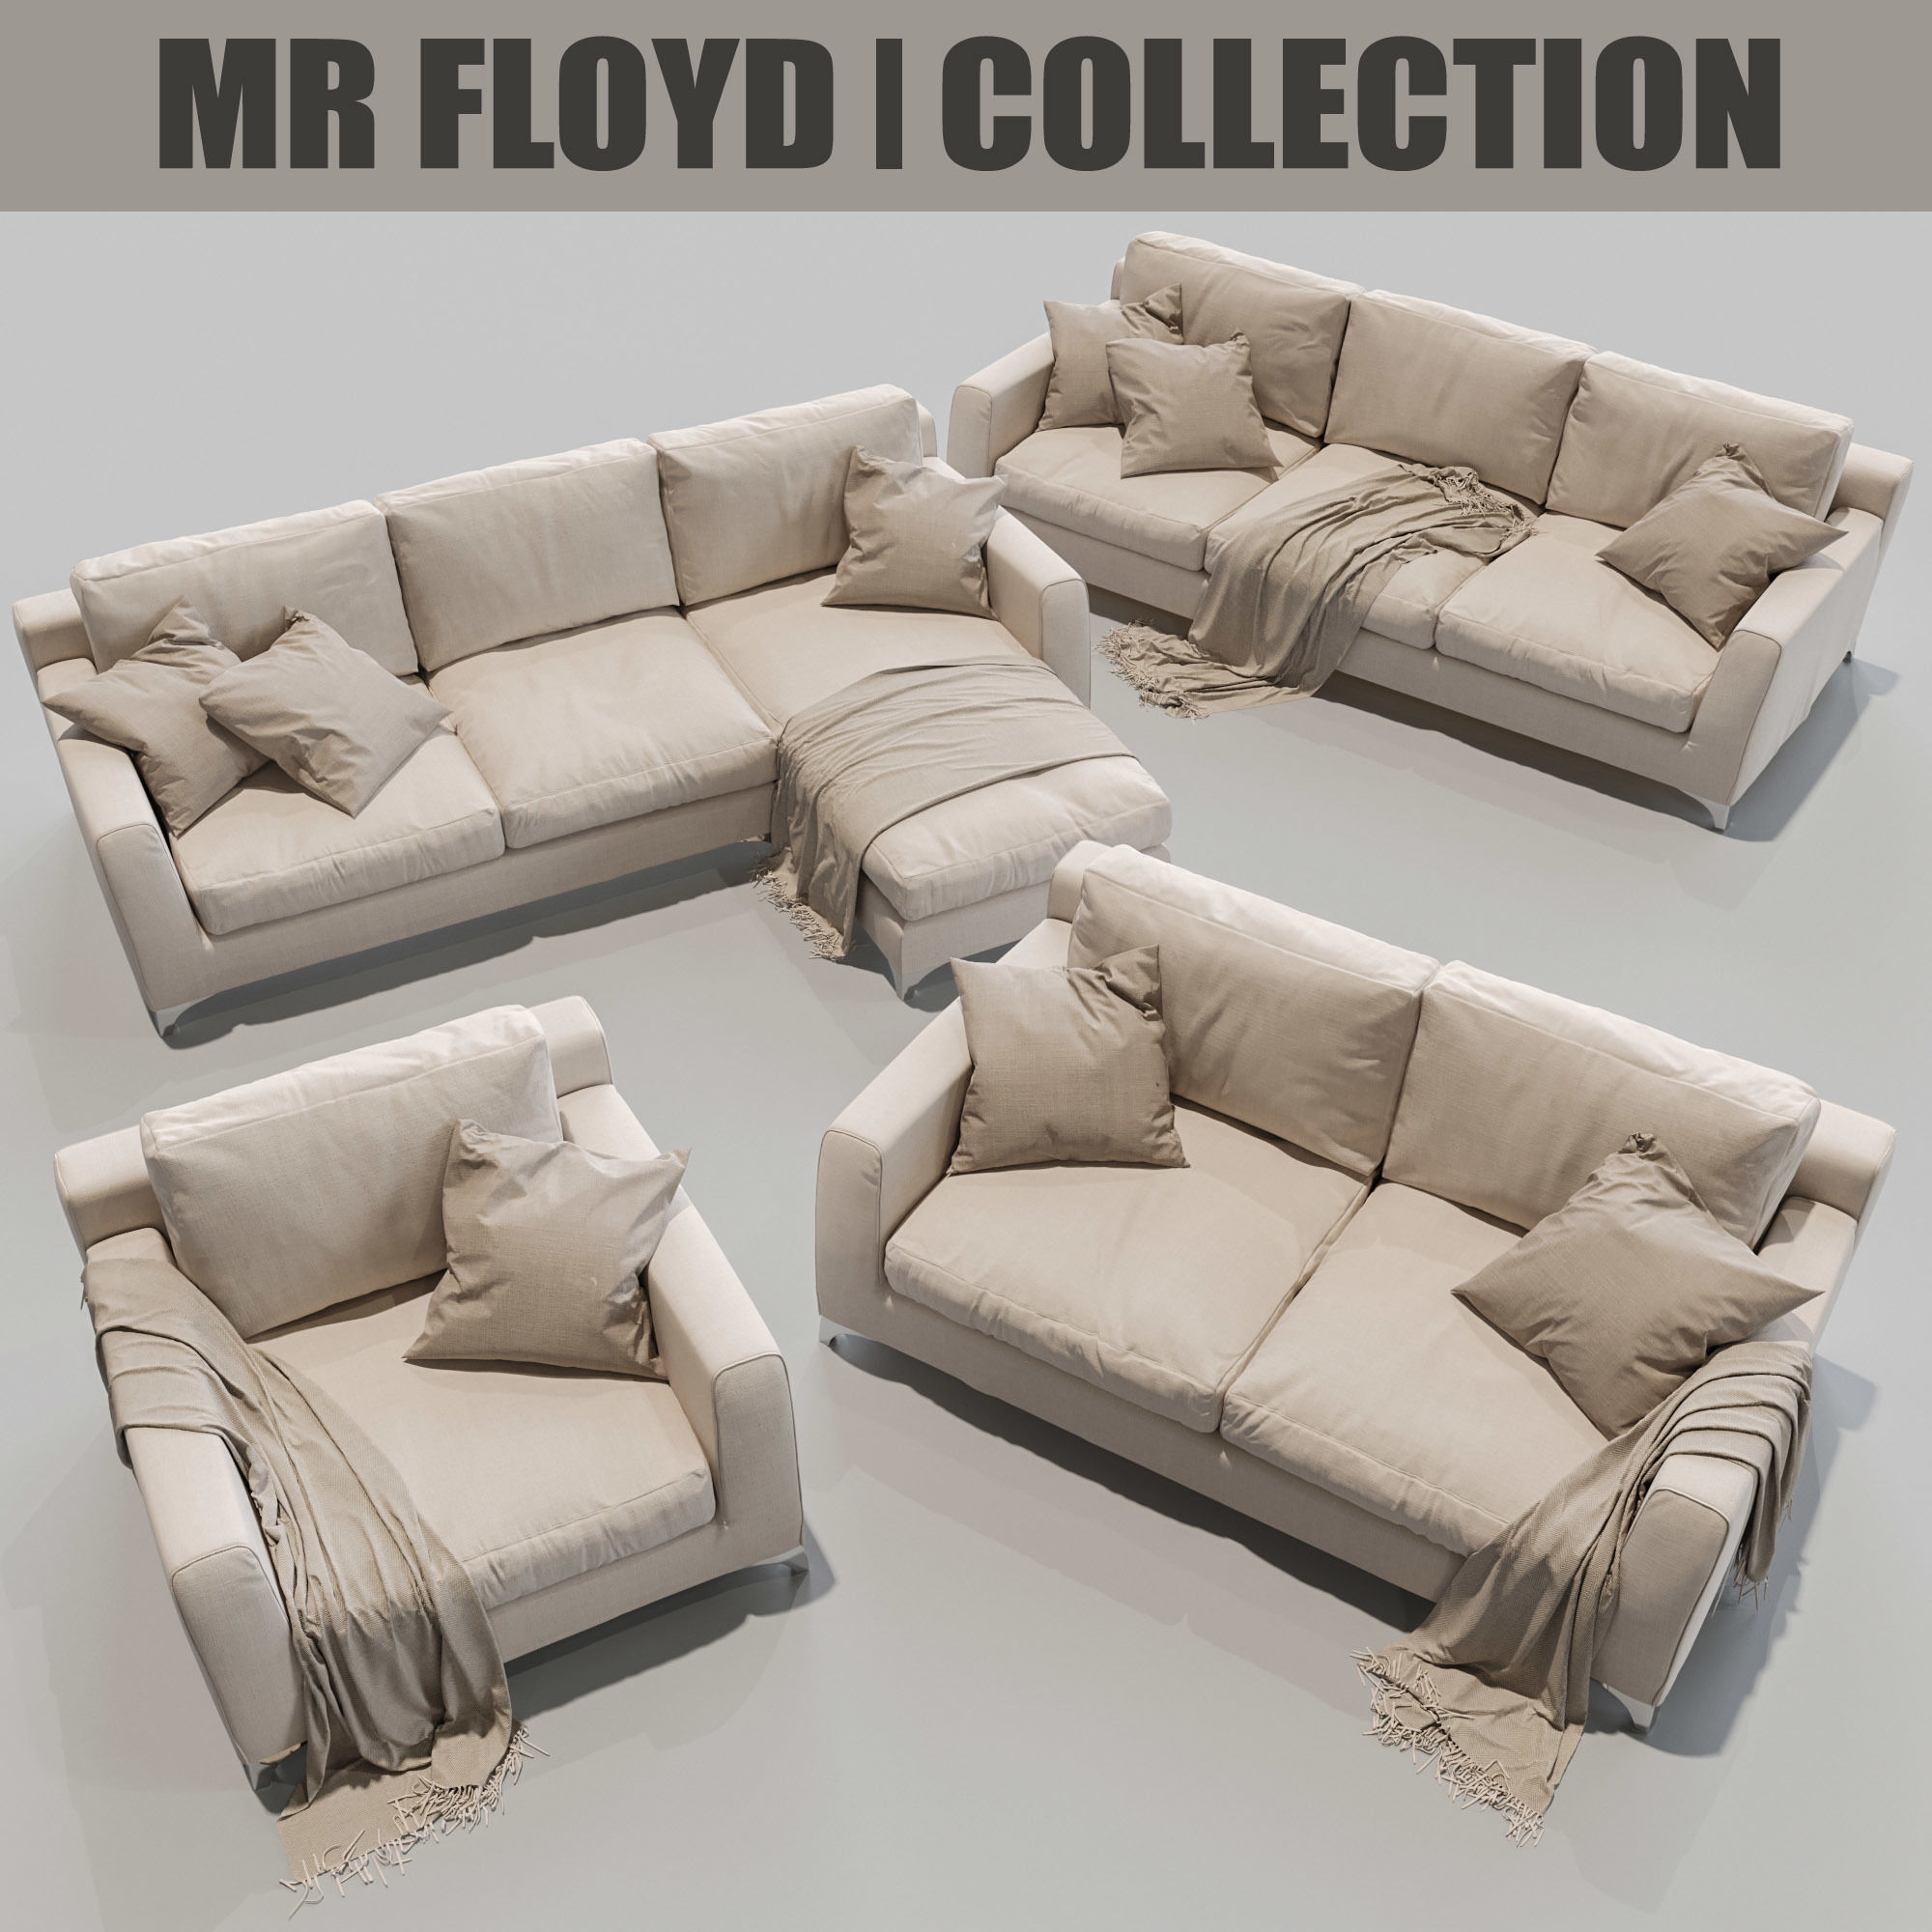 MR FLOYD - collection